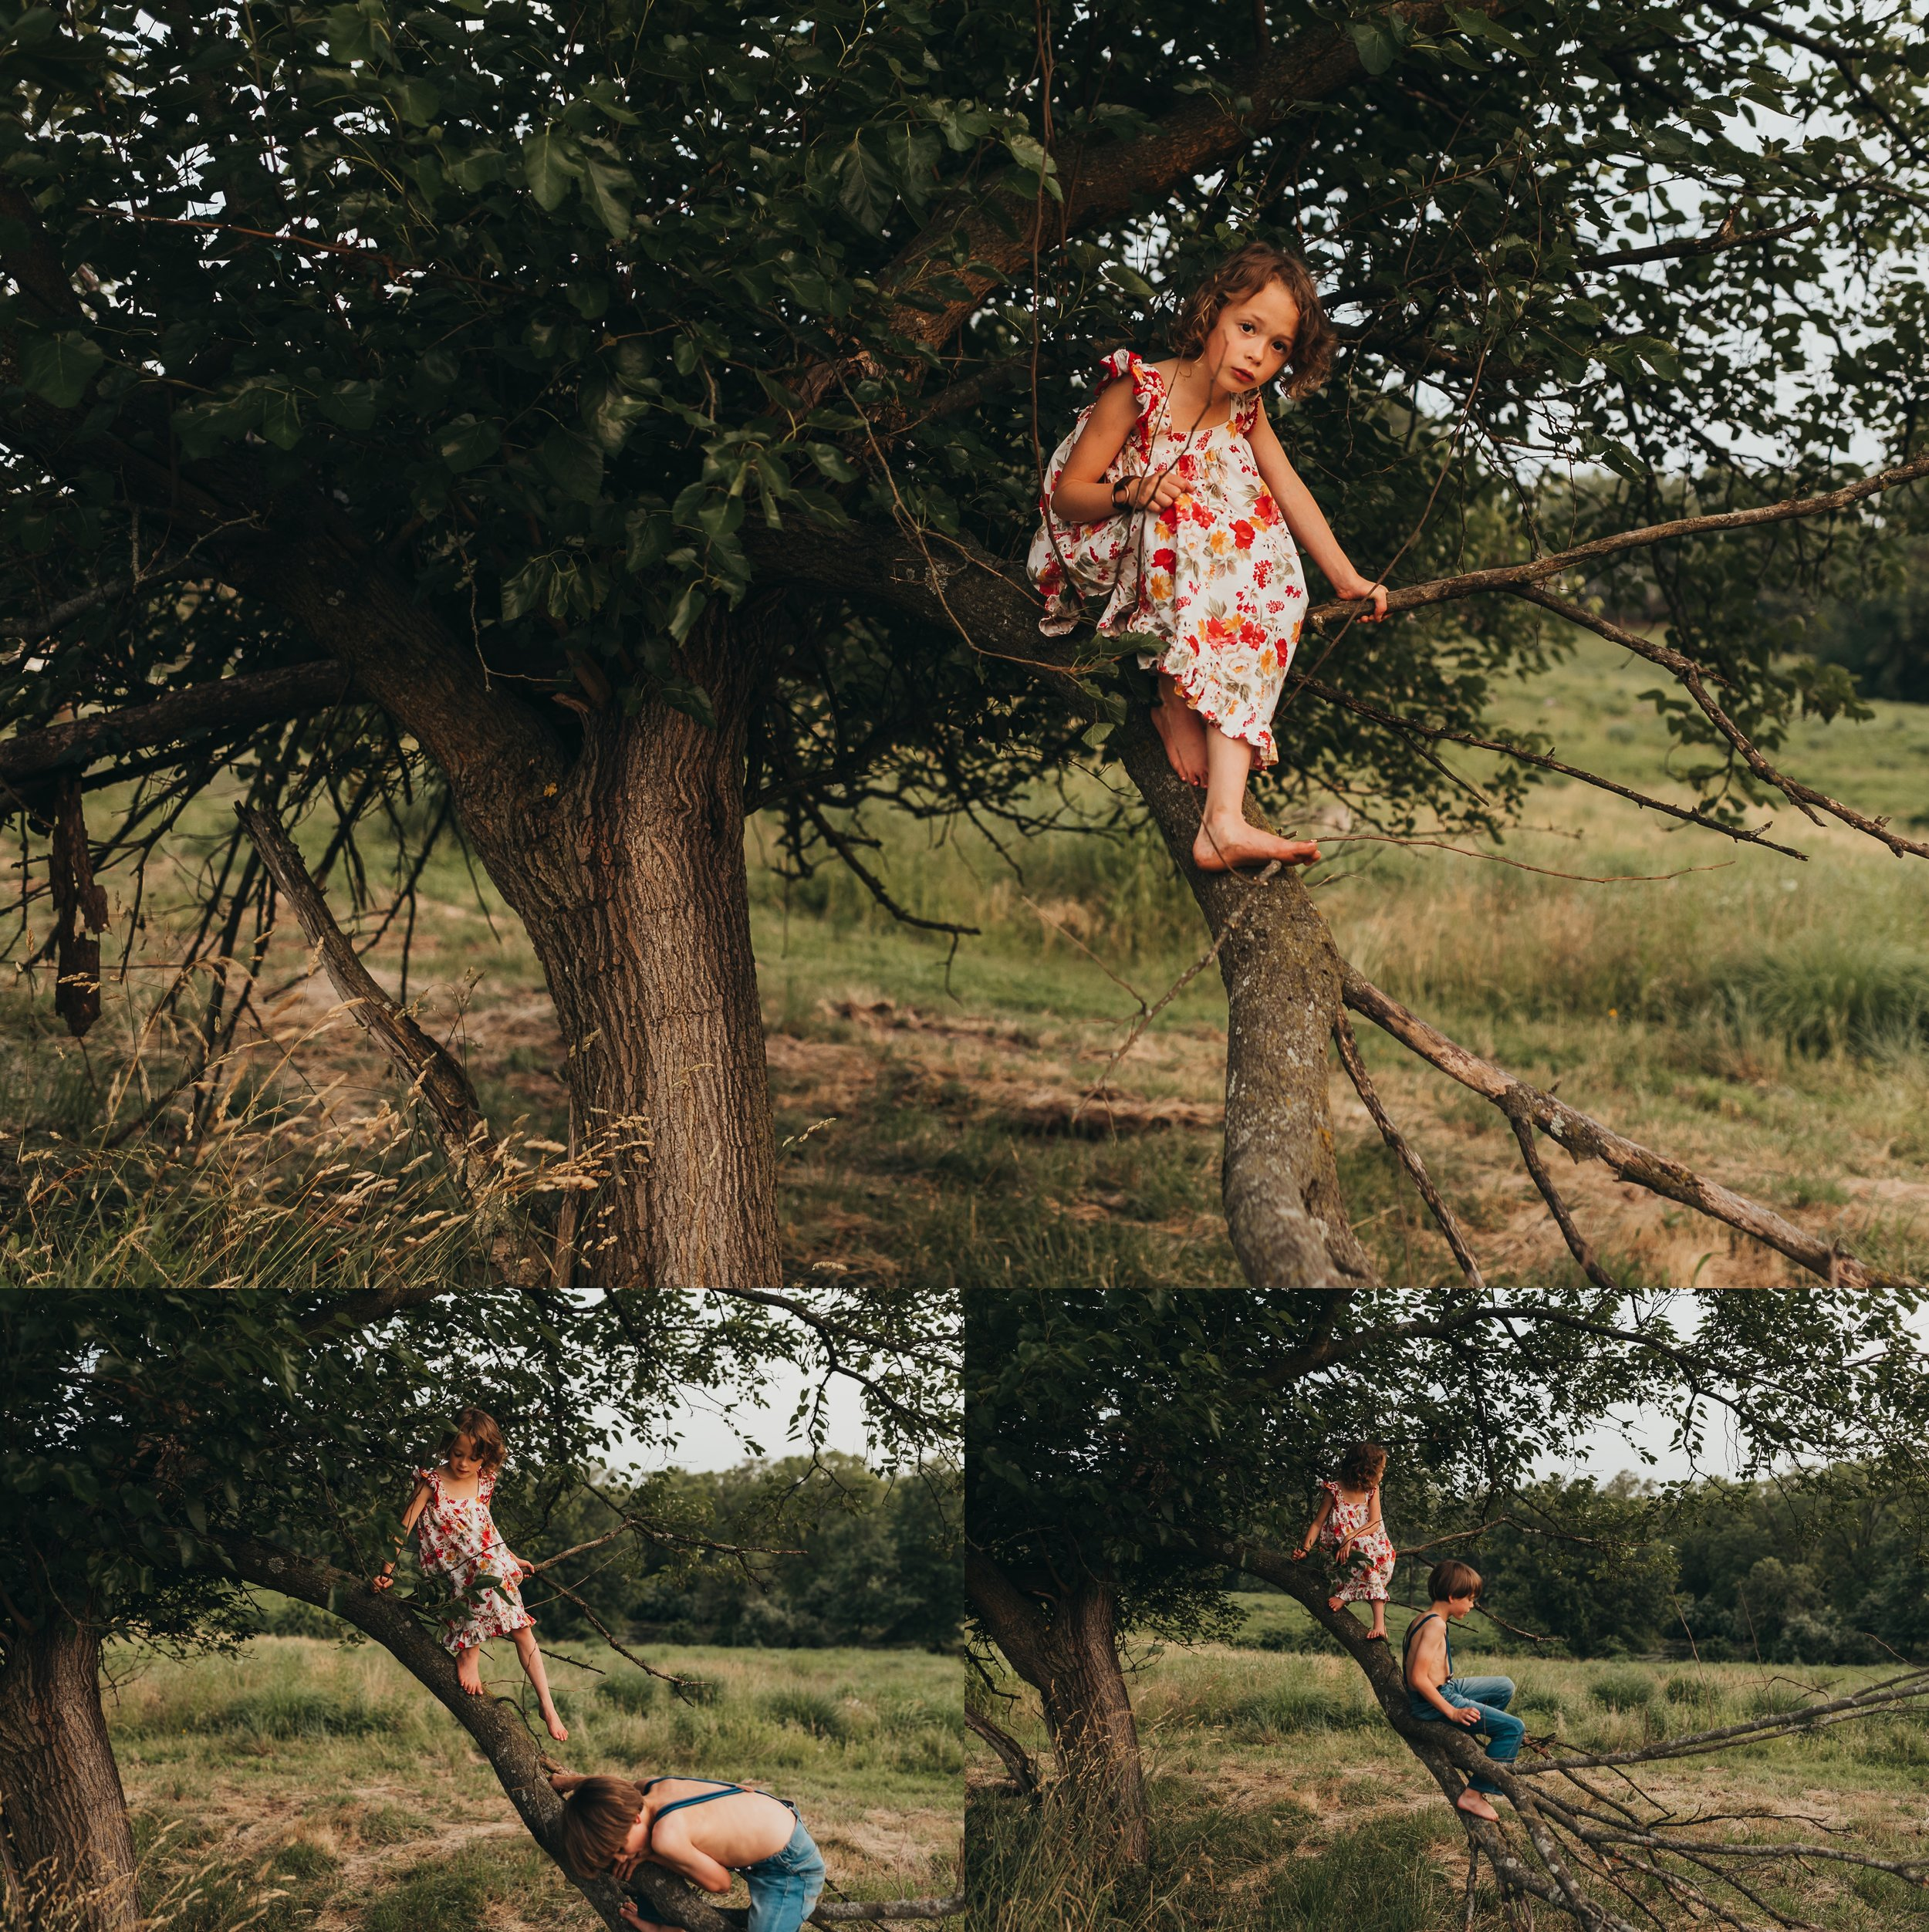 Climbing-trees-St-Louis-Photographer